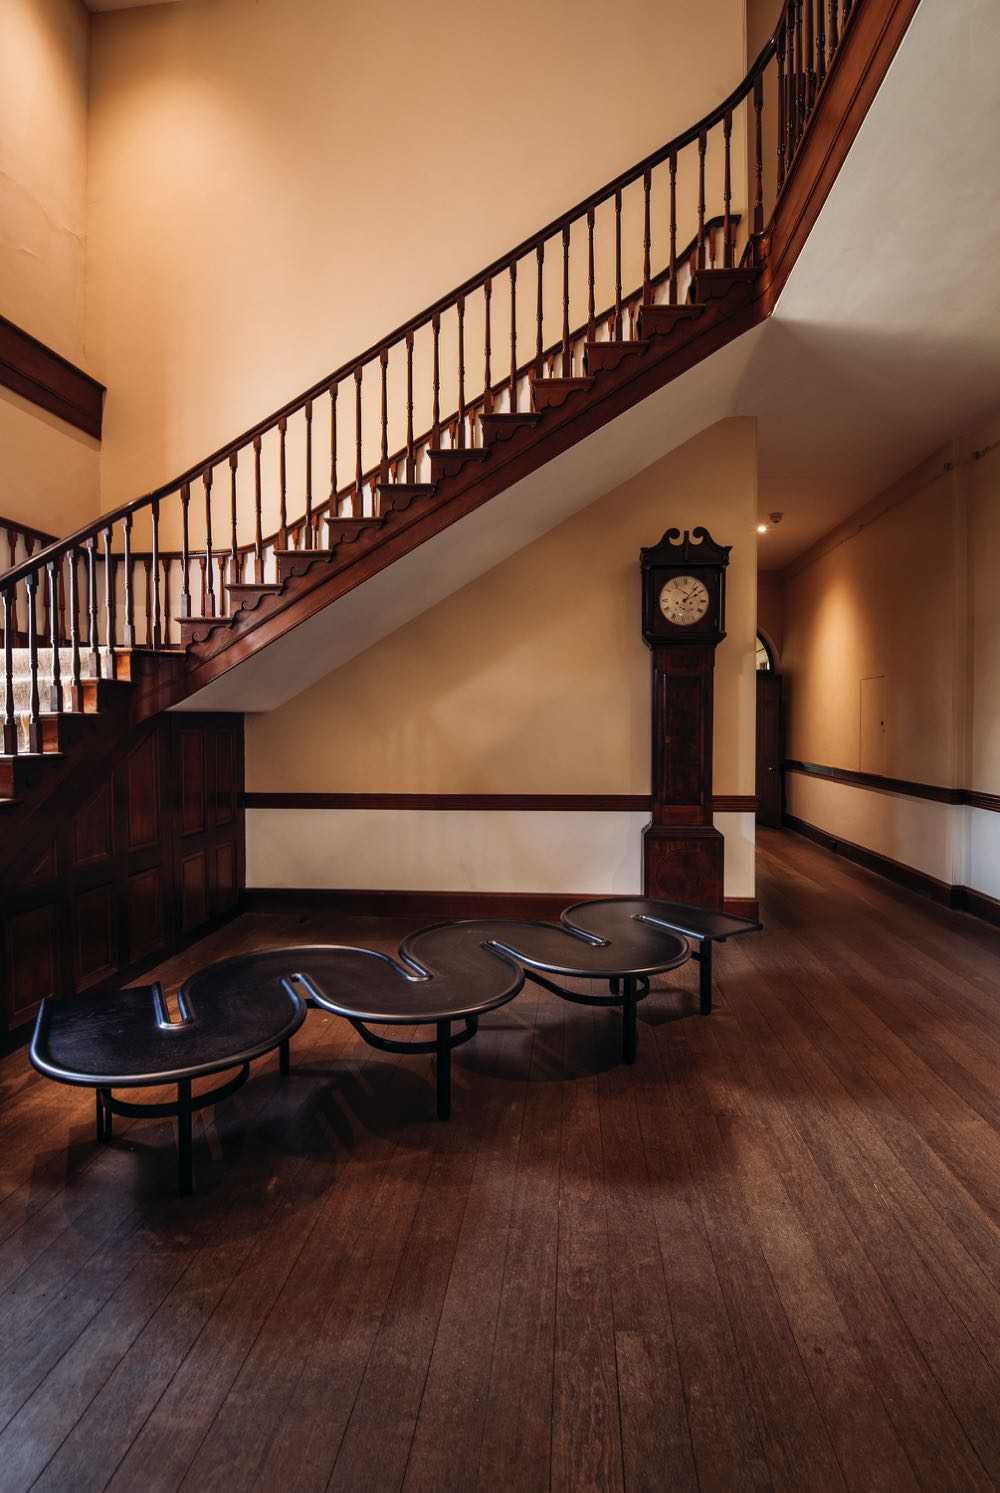 Fred Ganim's 'Plane table' (2016) in the staircase of Old Government House. The grandfather clock is a prized piece of colonial furniture from the Old Government House collection.